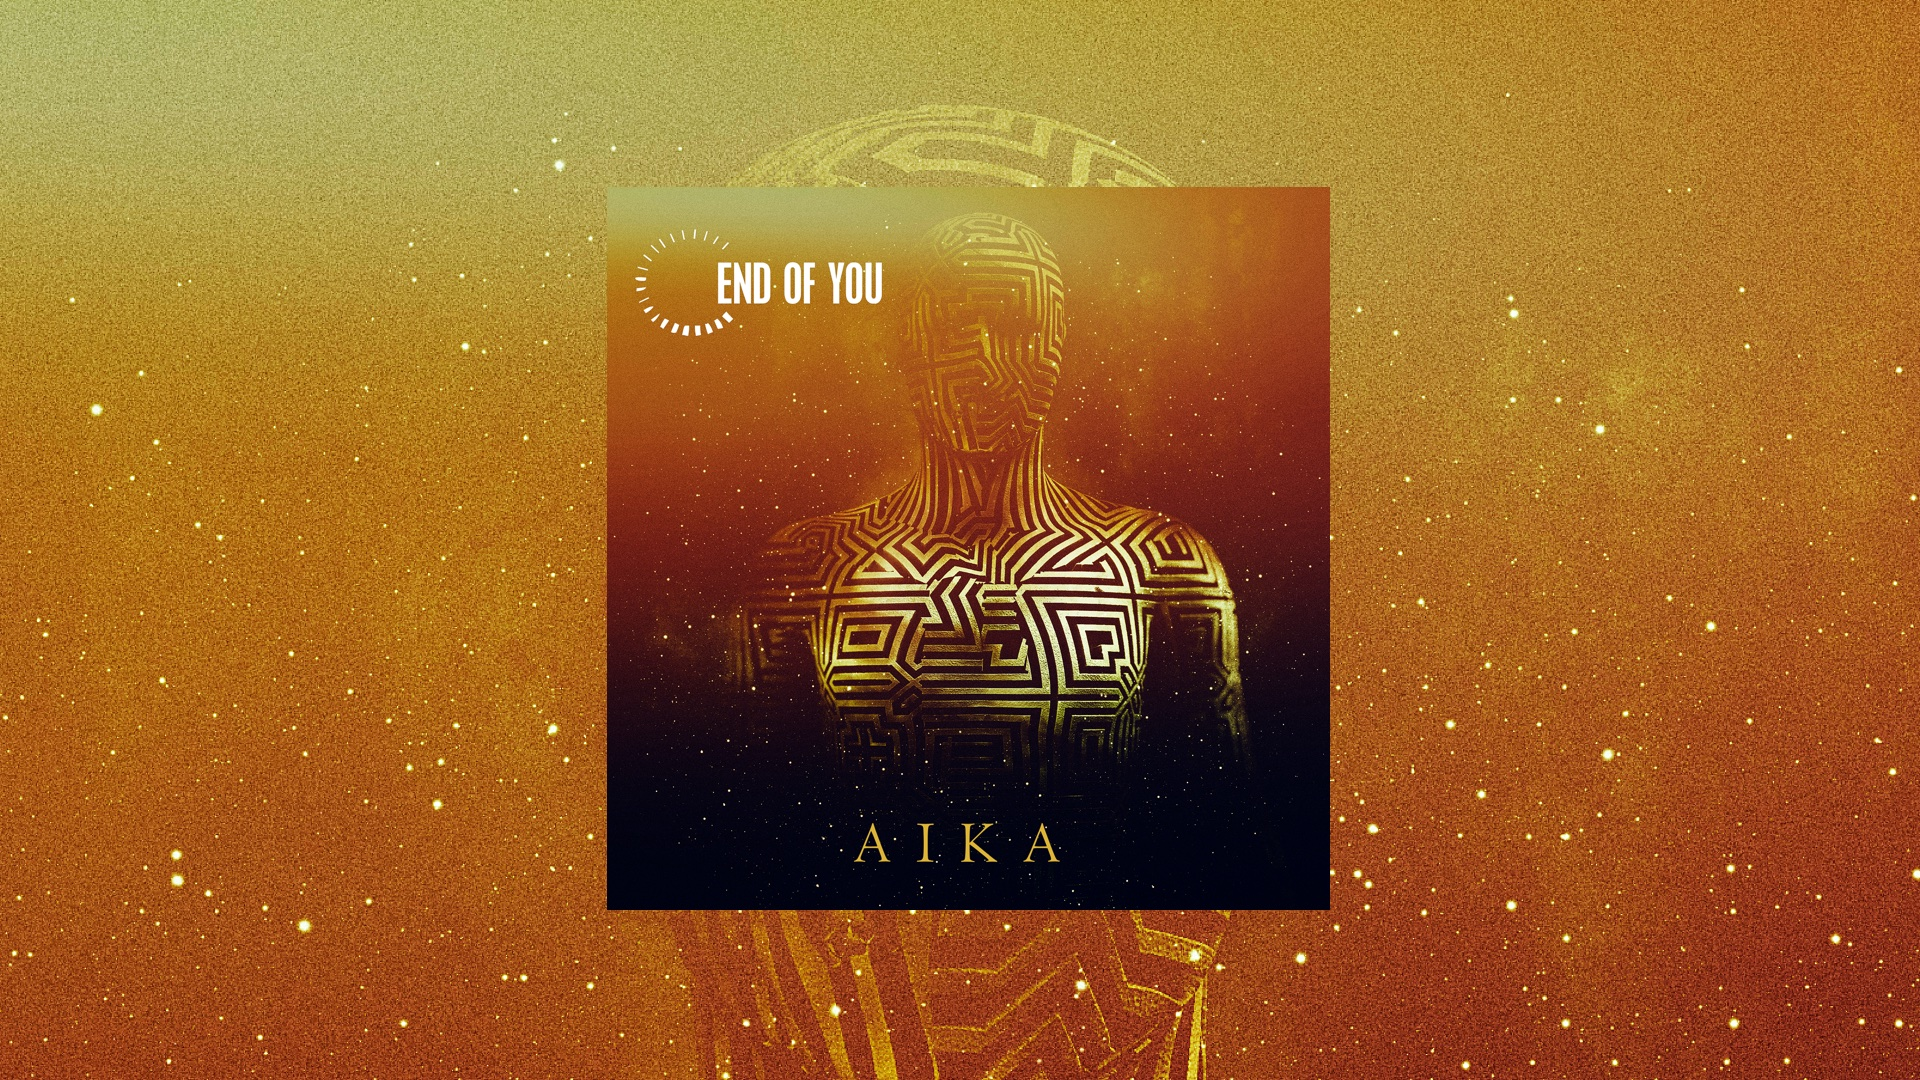 Aika - single cover with background